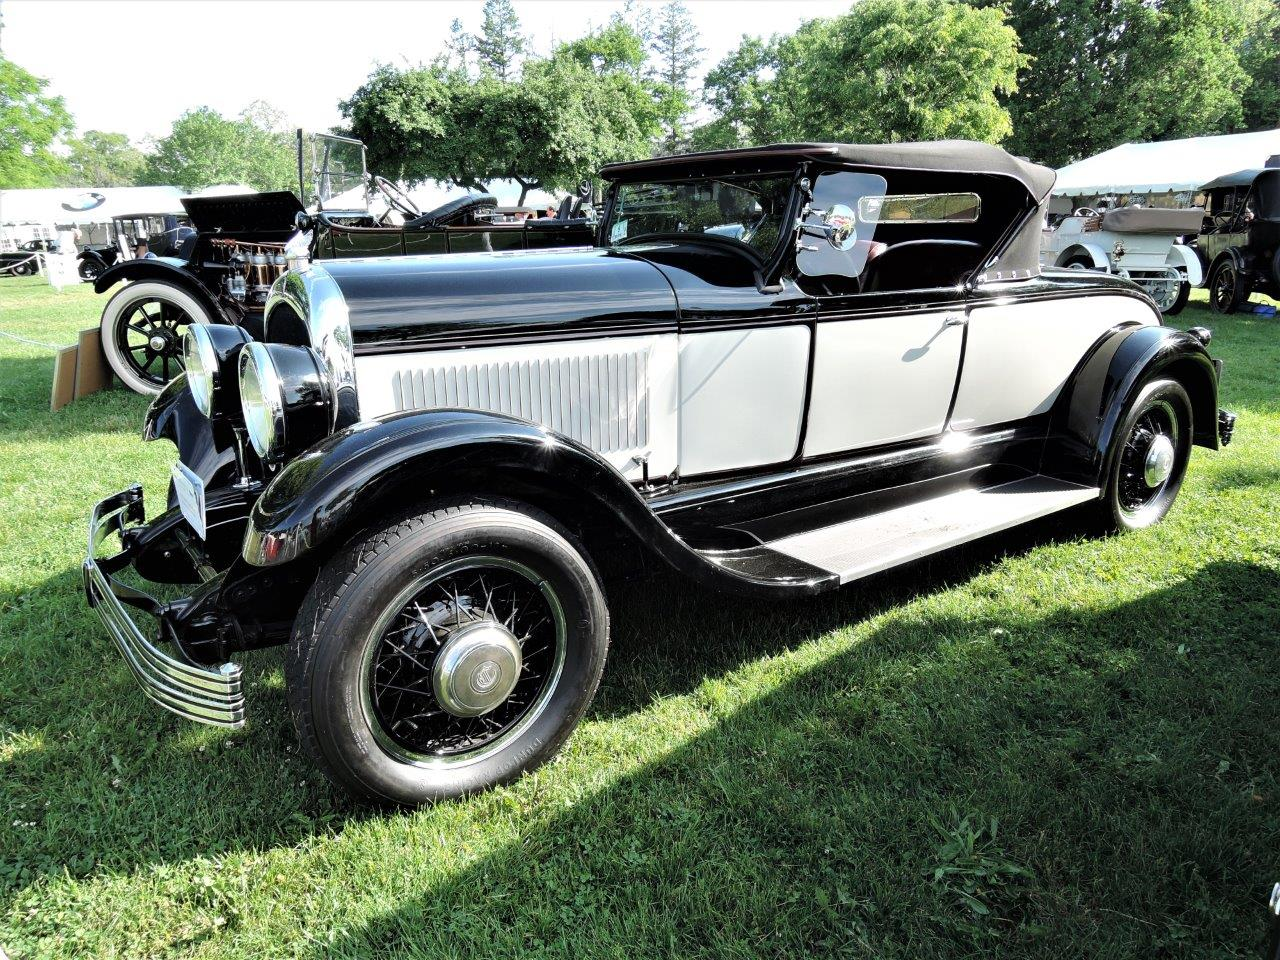 white/black 1928 Chrysler 71 Sport Roadster - 2018 Greenwich Concours Americana